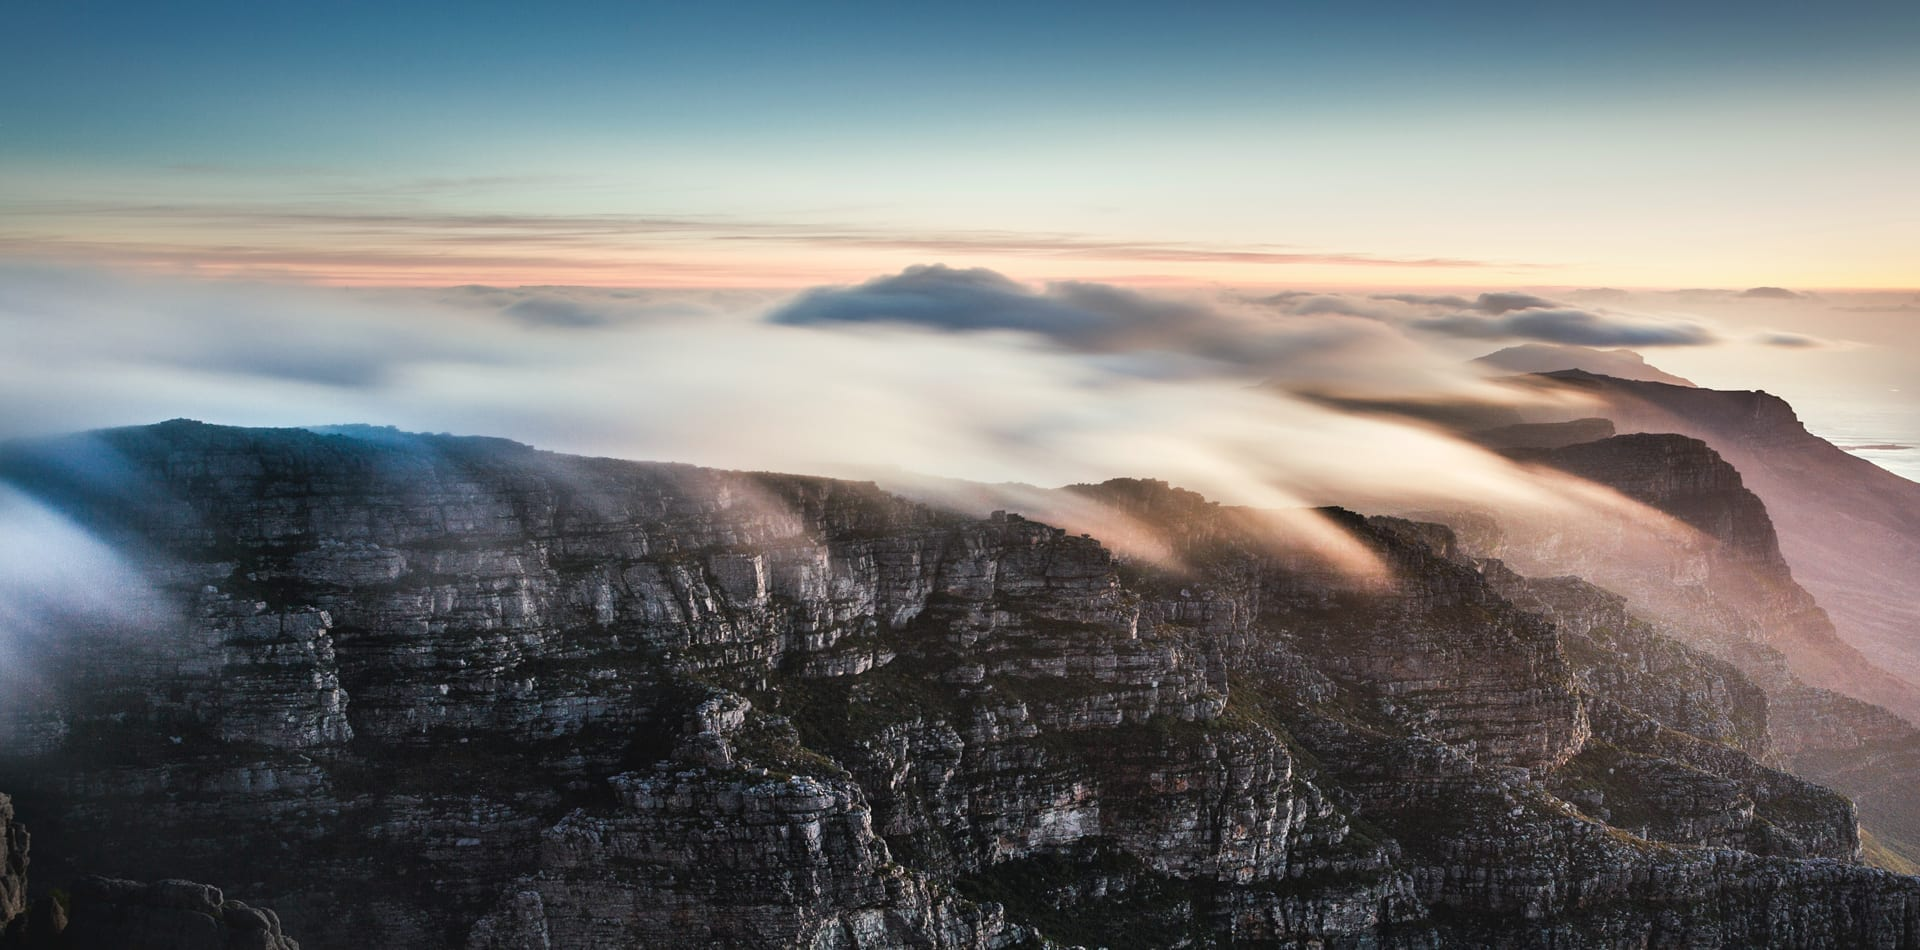 Sunrise over Table Mountain in South Africa